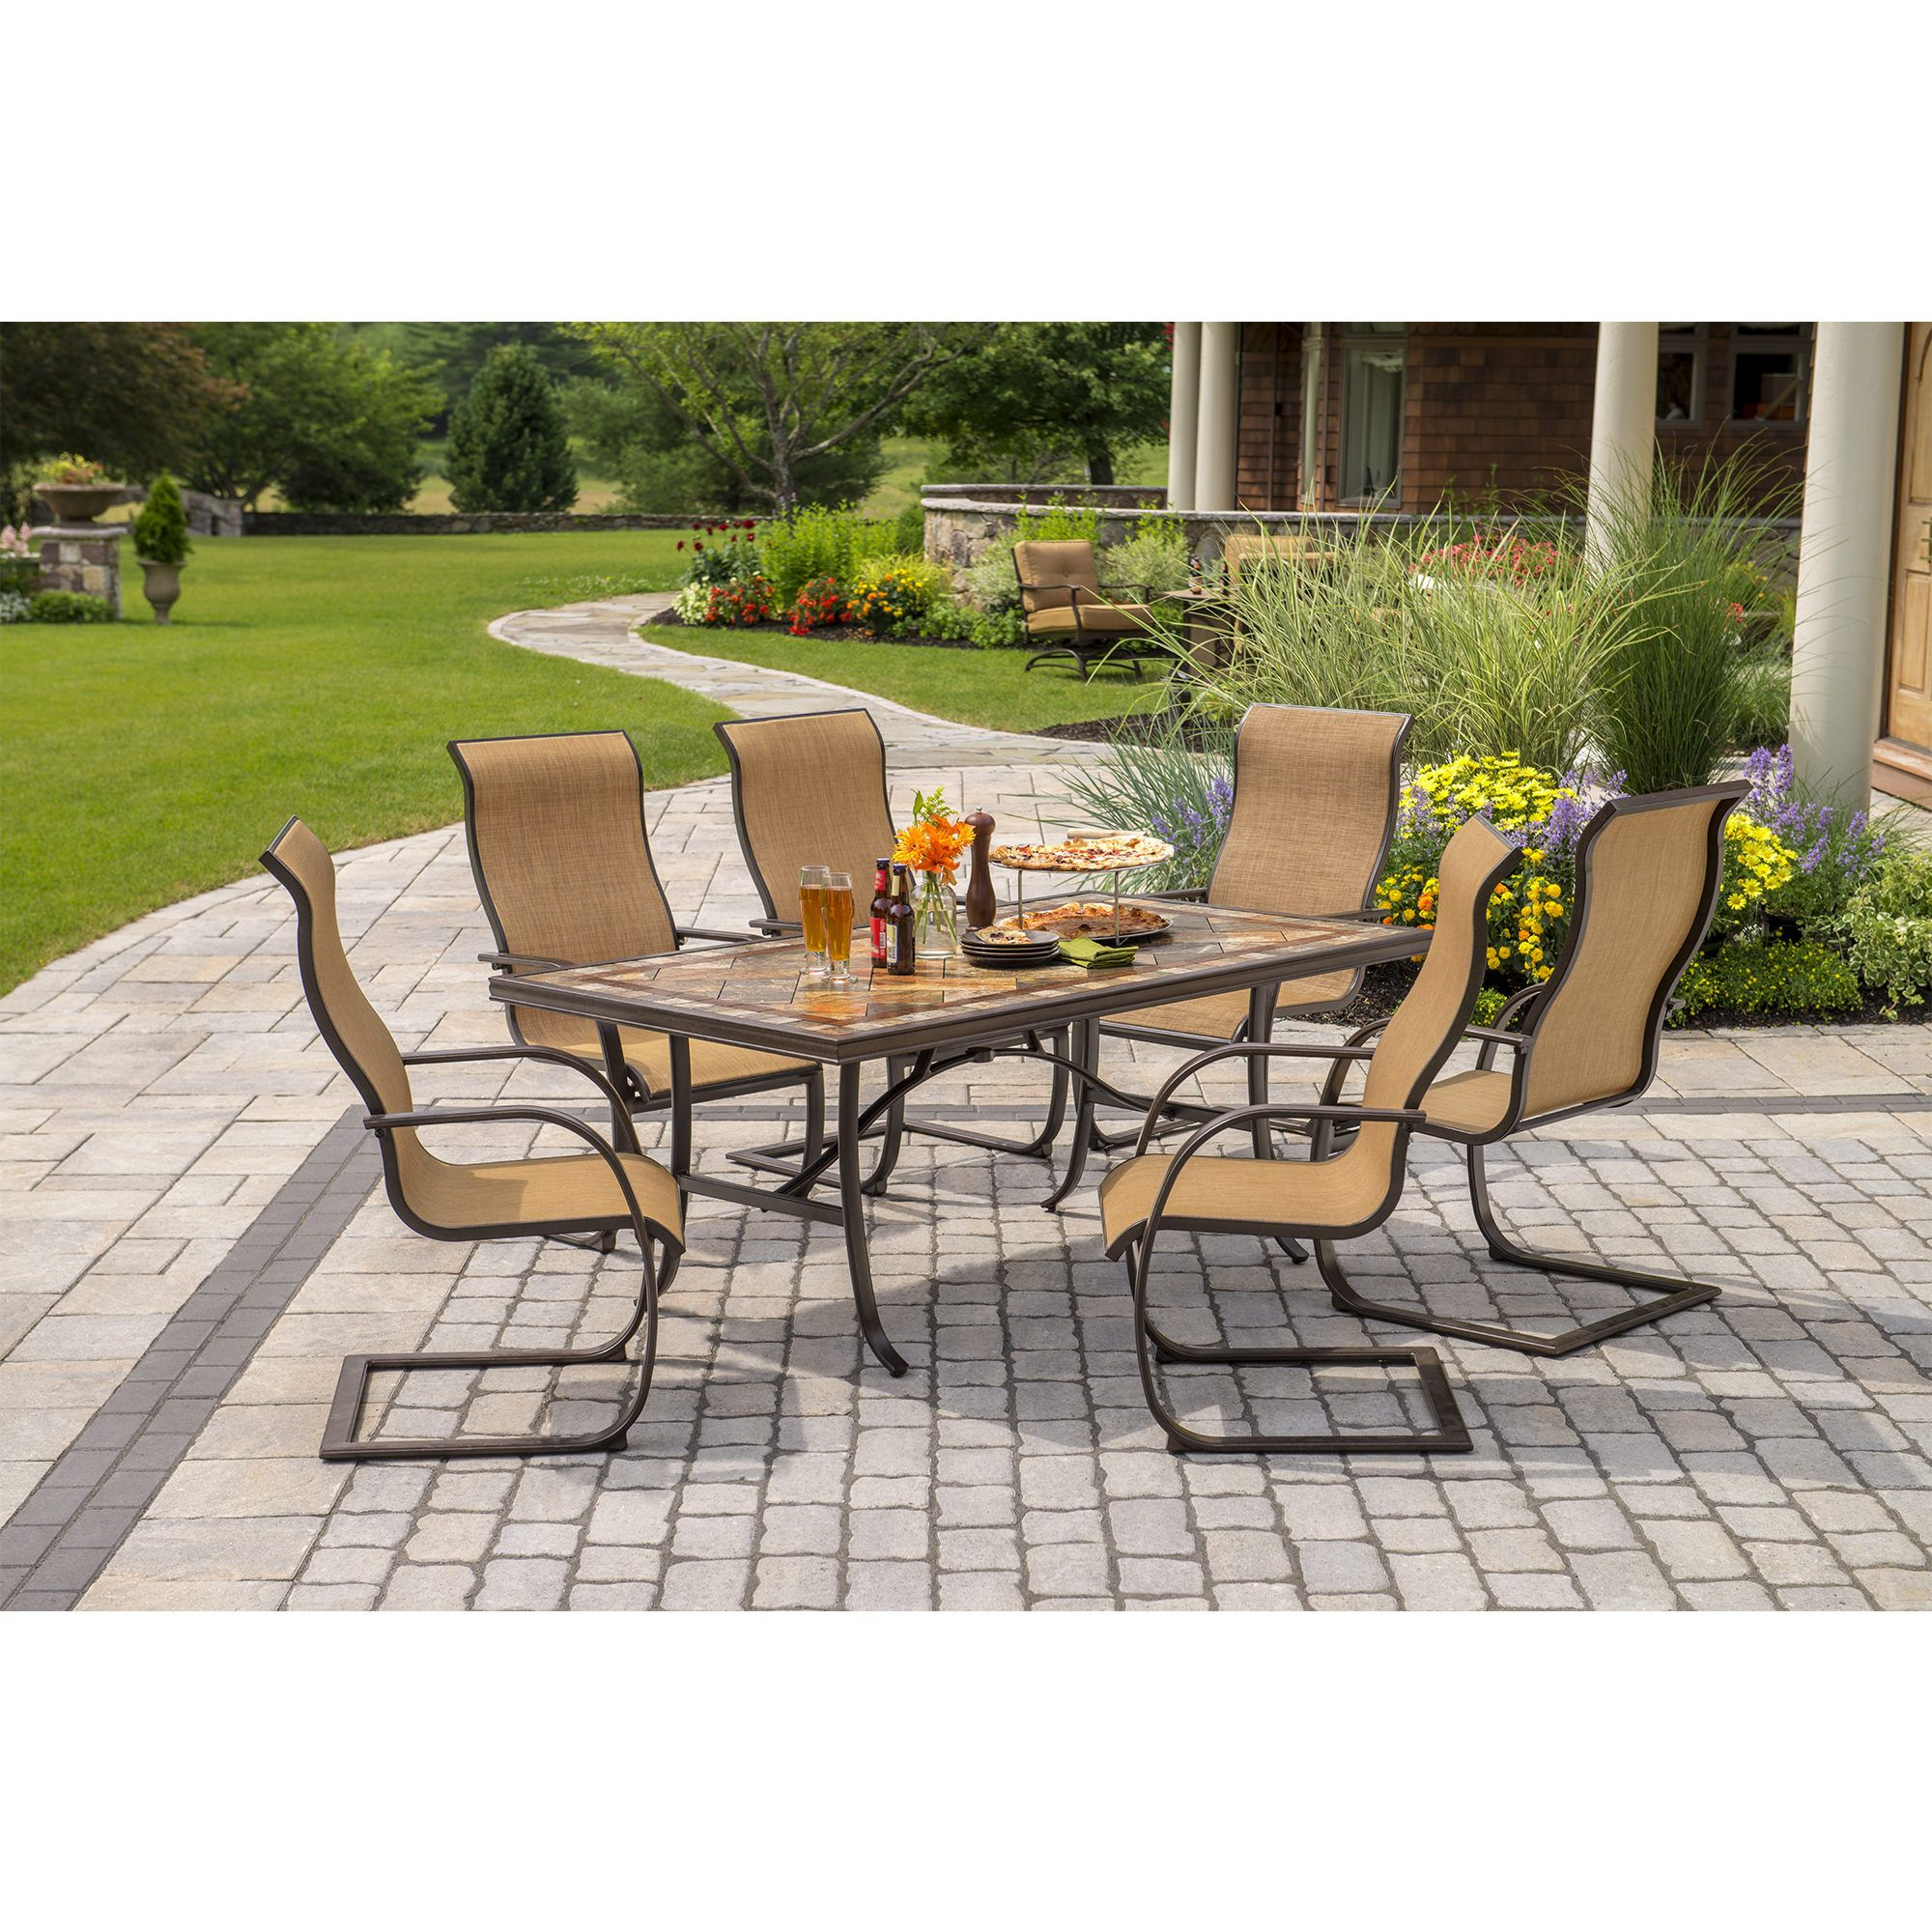 Berkley Jensen Copley 7 Piece Dining Set